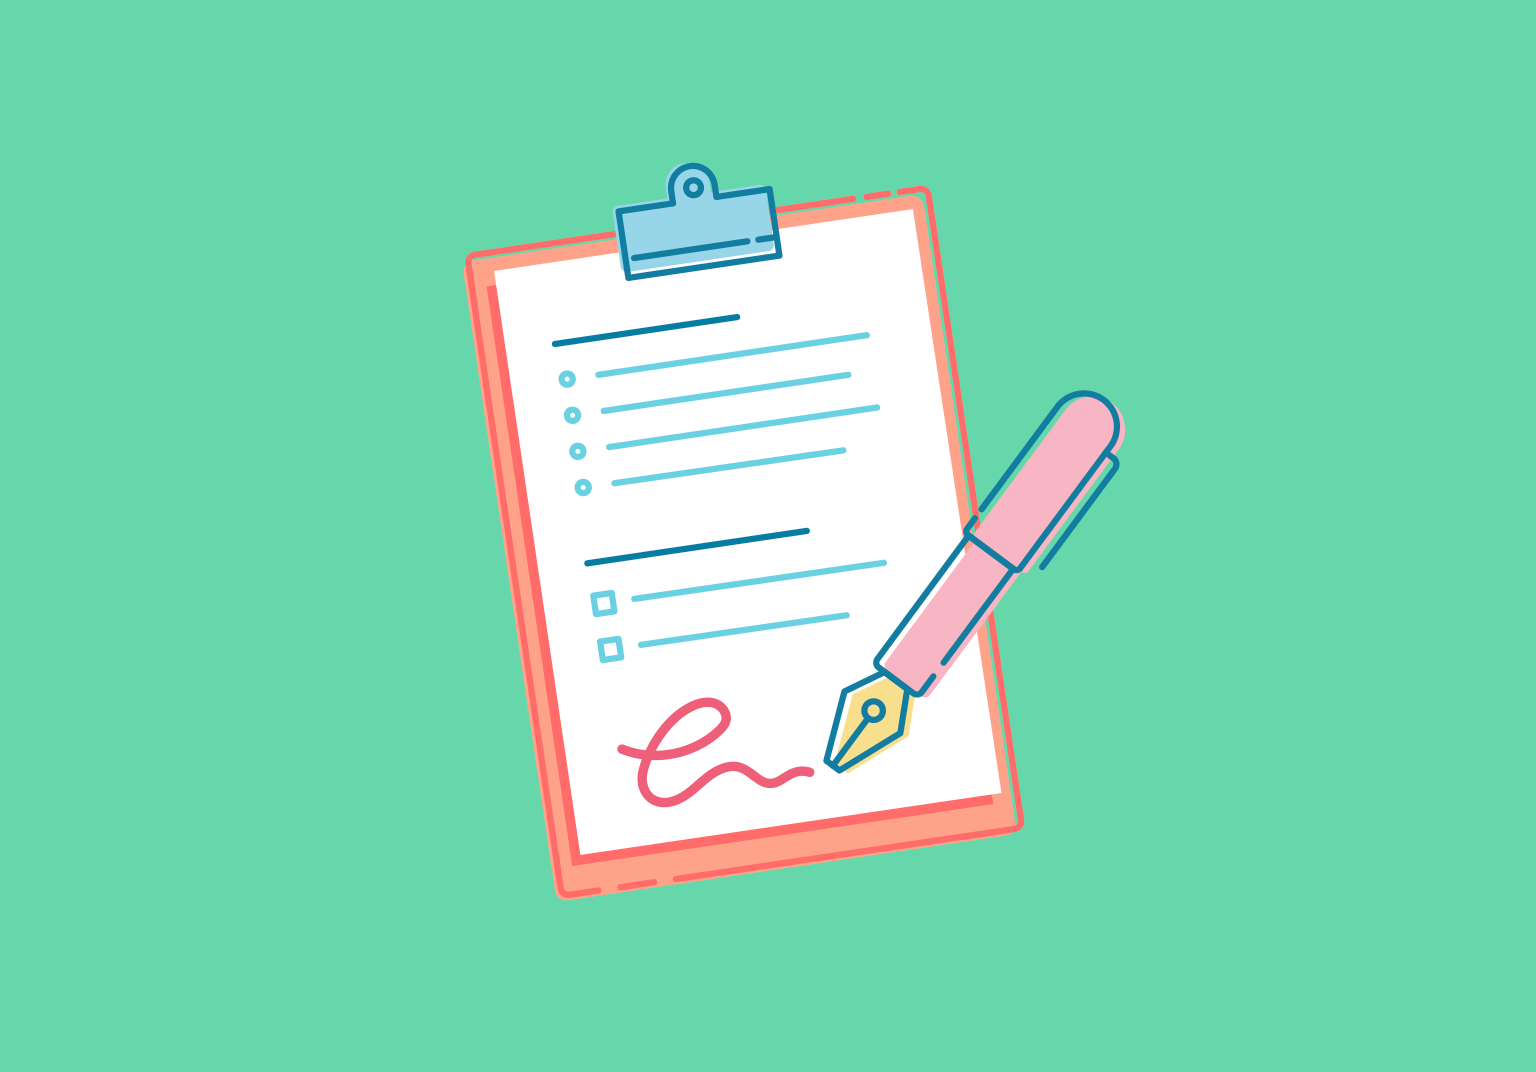 An illustration of a pen signing a form on a clipboard